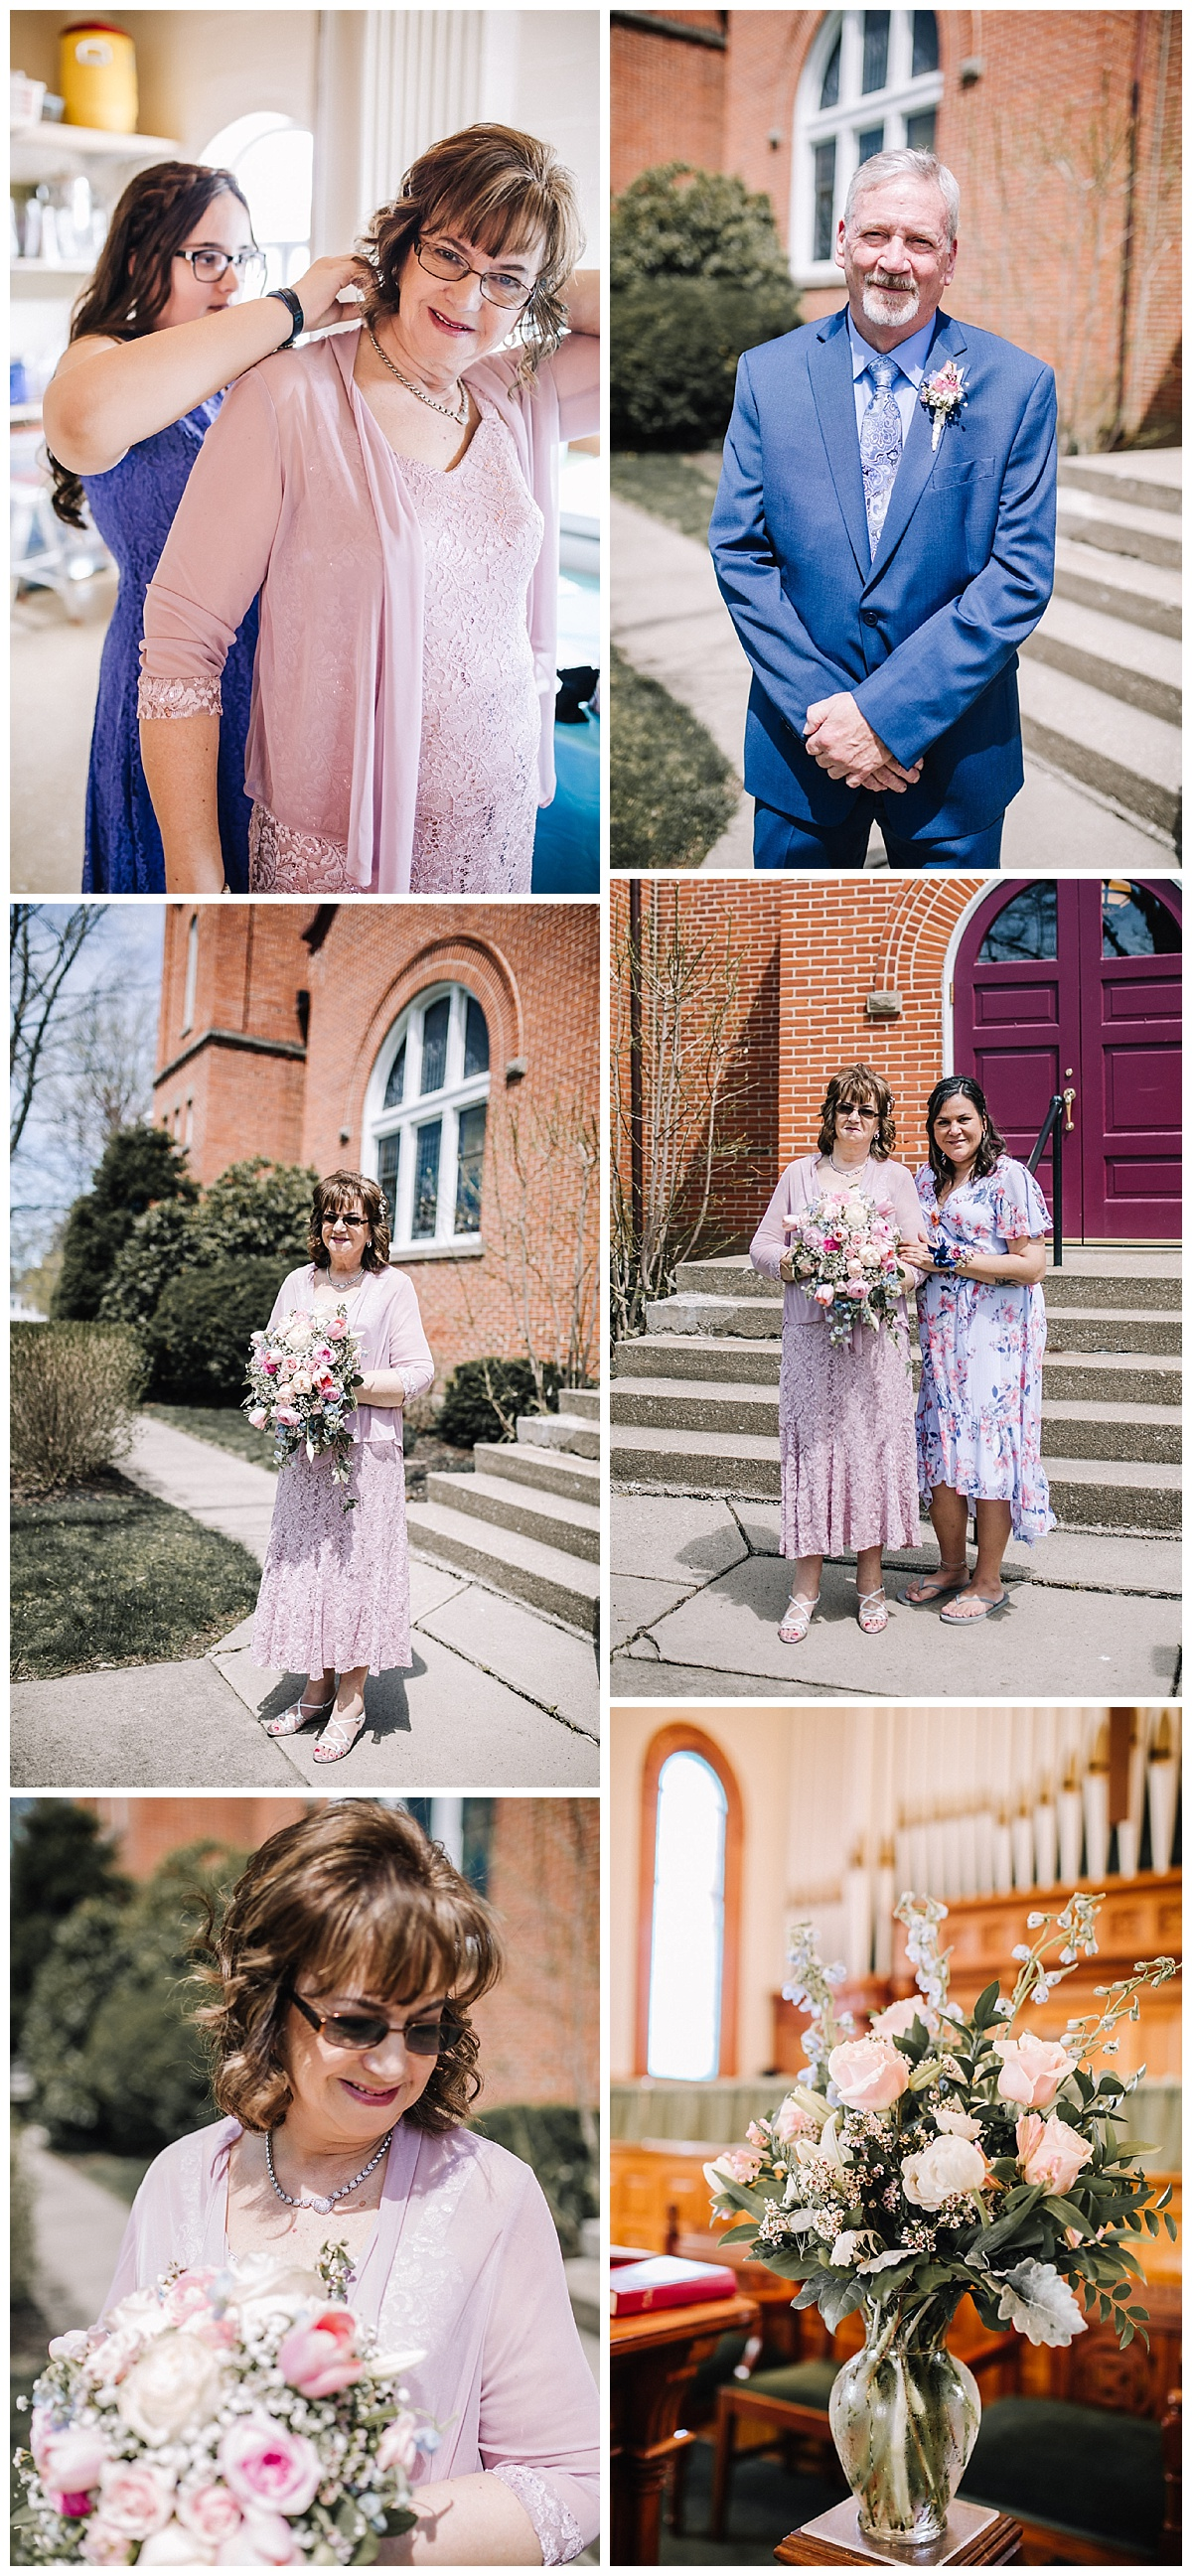 Mr. & Mrs. Burger - Northeast Ohio Wedding